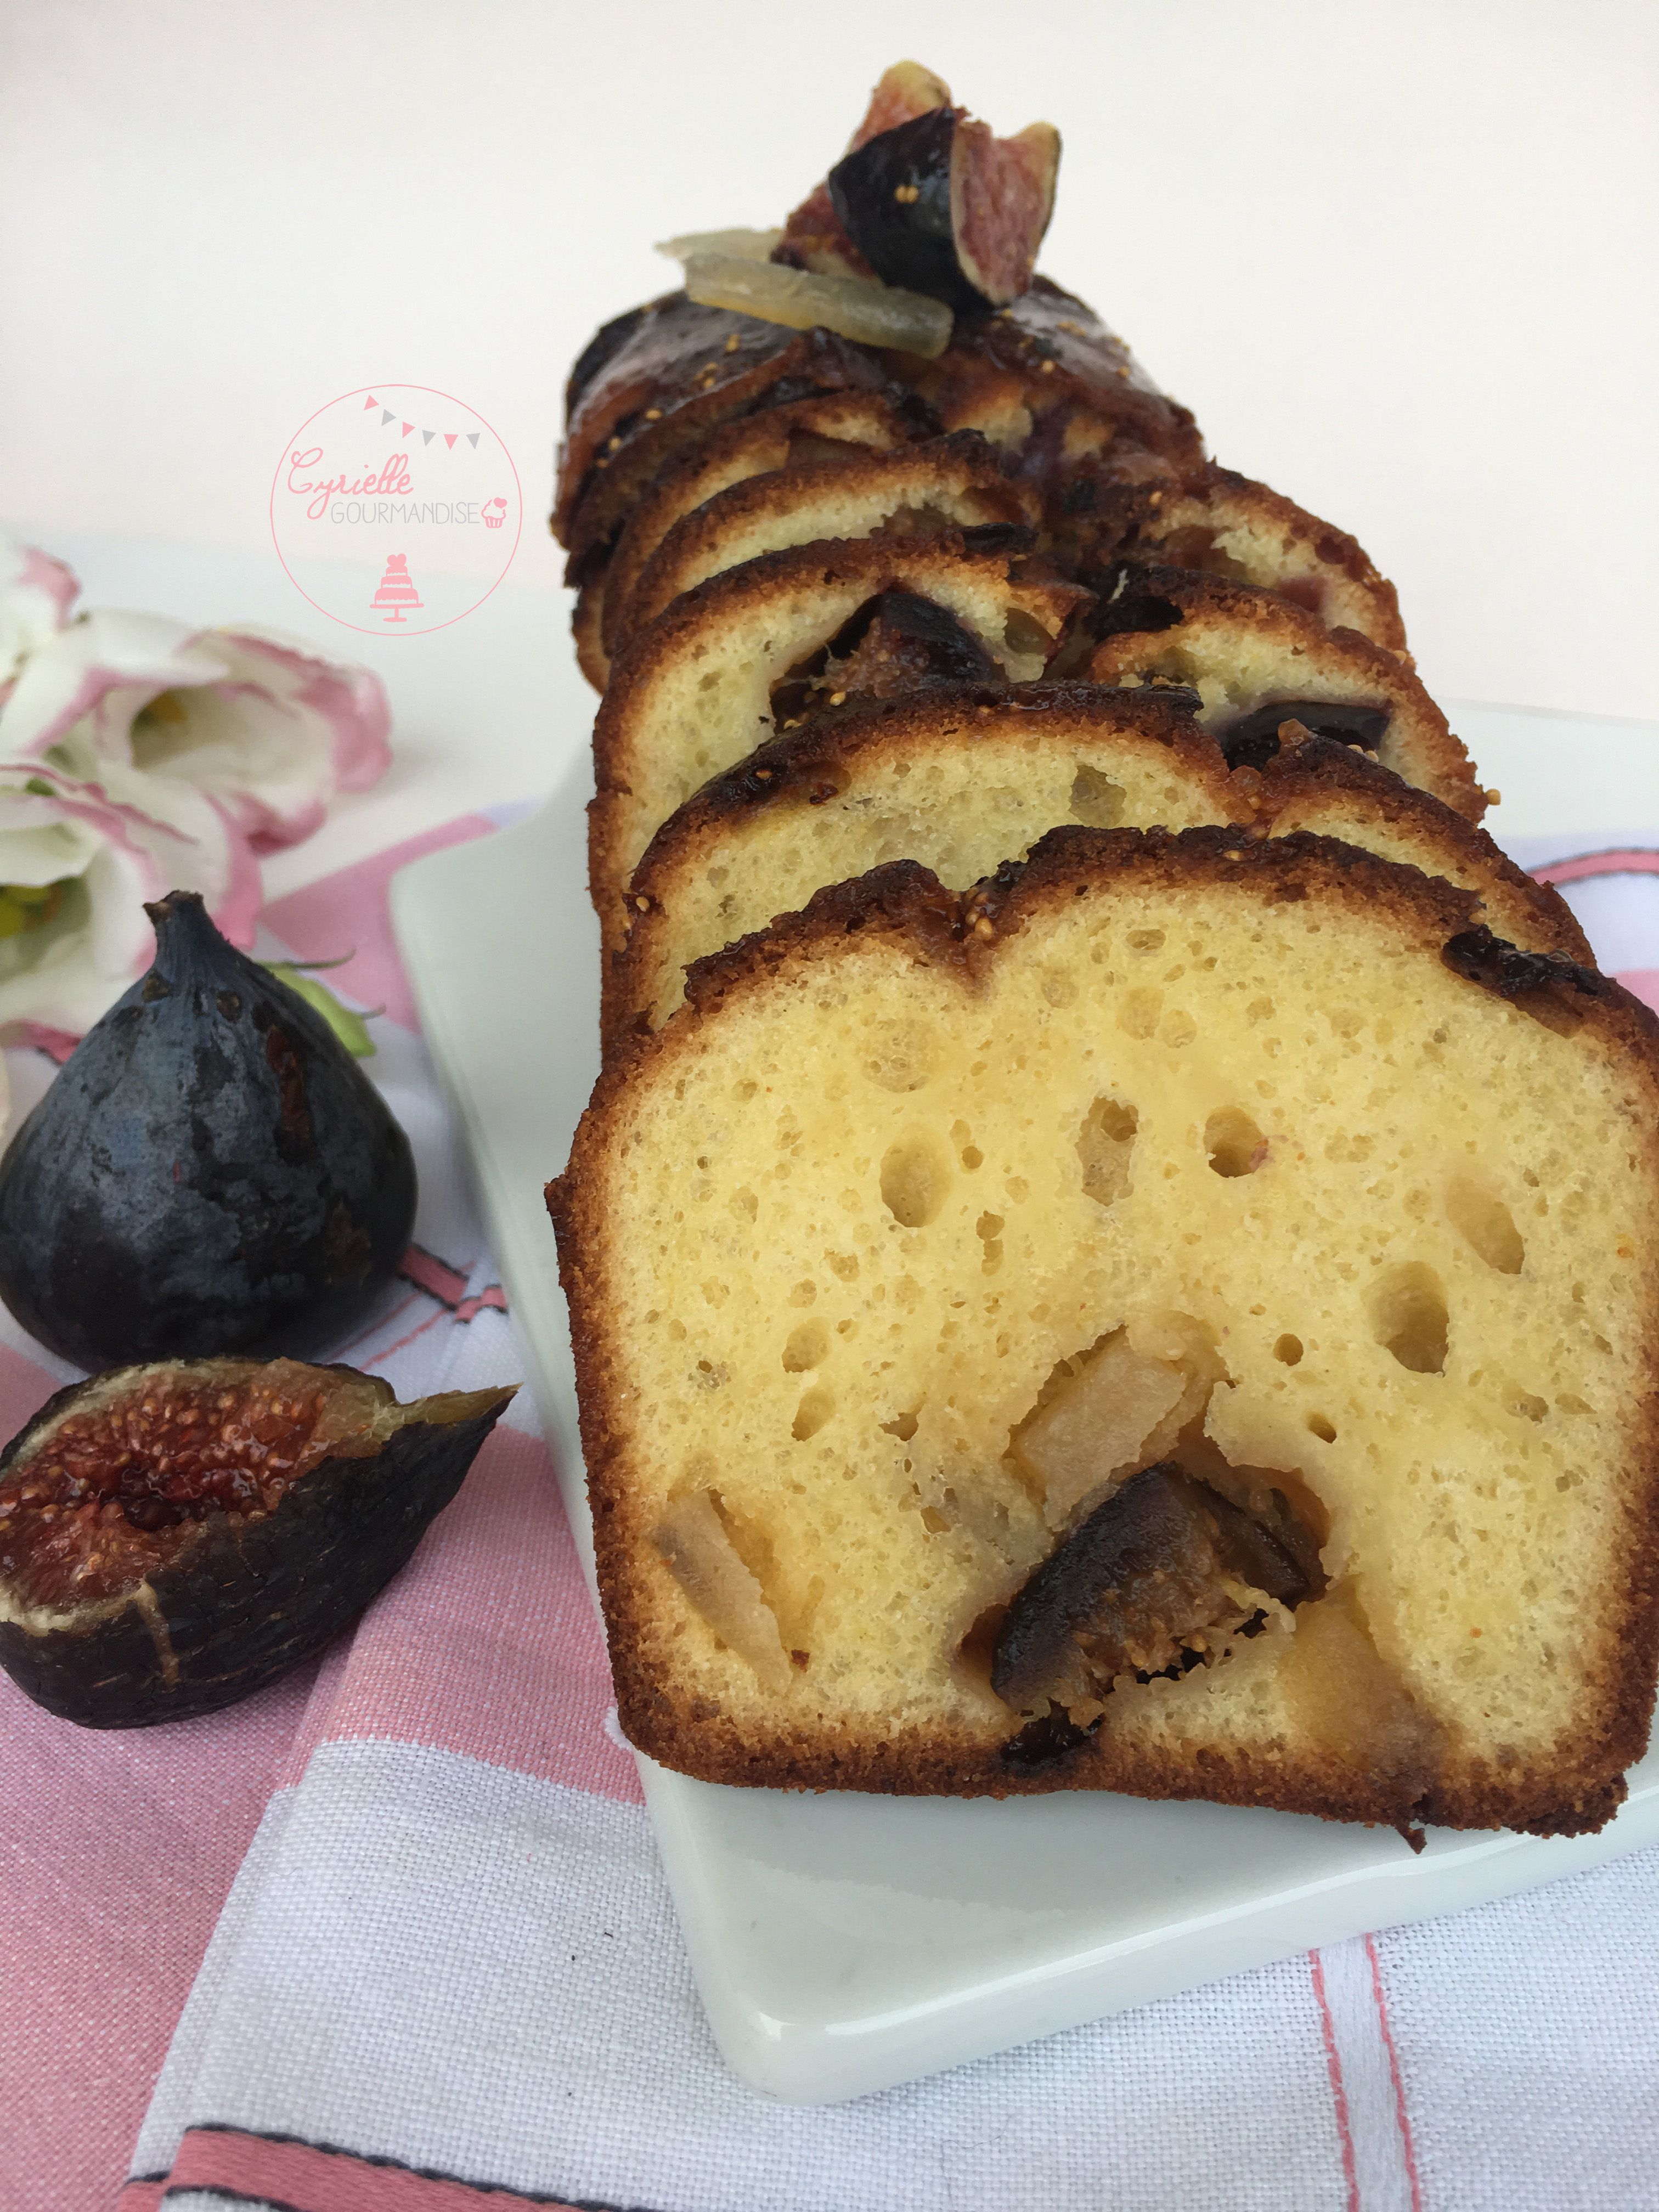 Cake Citron Figues 5